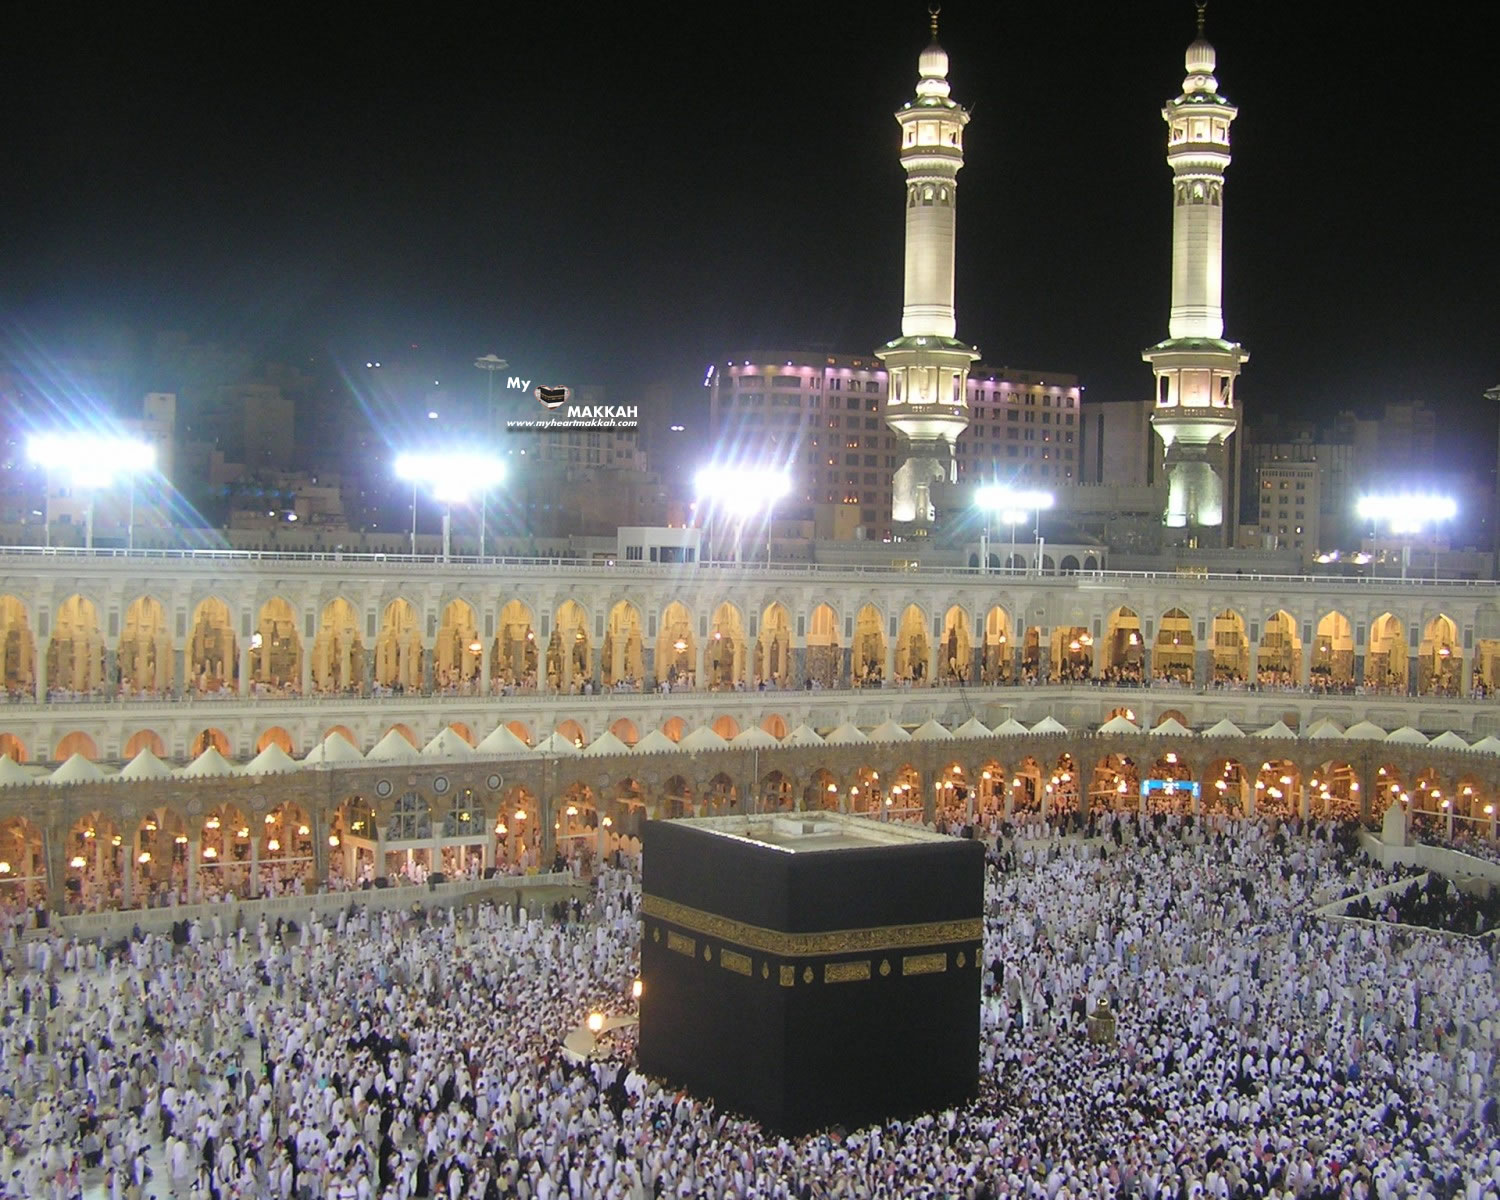 http://2.bp.blogspot.com/-gYA8fPABtJM/T-9tqQtxZaI/AAAAAAAAAcU/cLWKbt9Sq-I/s1600/PHOTO_OF_KAABA_AT_NIGHT.jpg